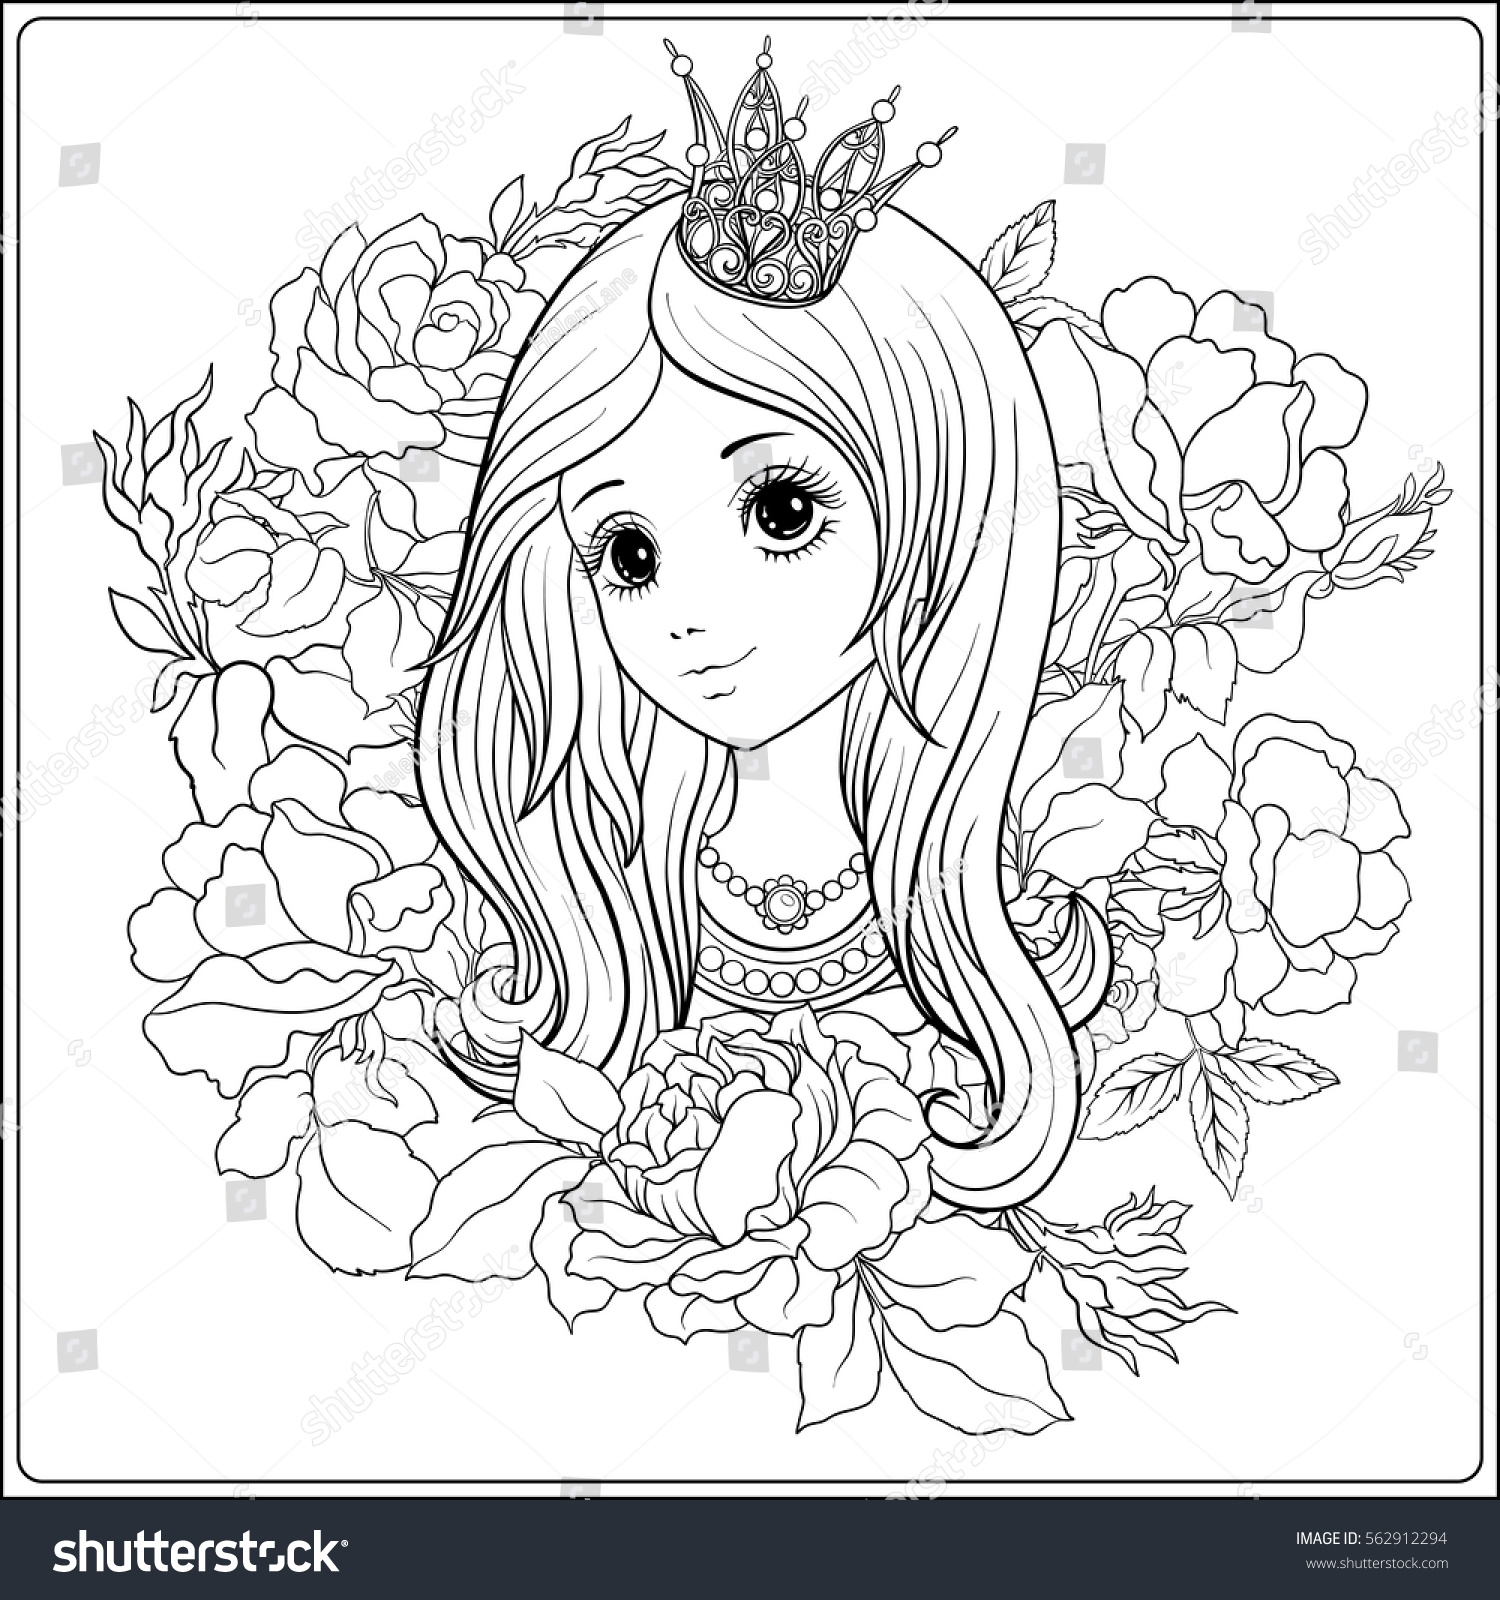 Coloring book princess crowns - Young Nice Girl In Princess Crown In The Garden Of Roses Outline Drawing Coloring Page